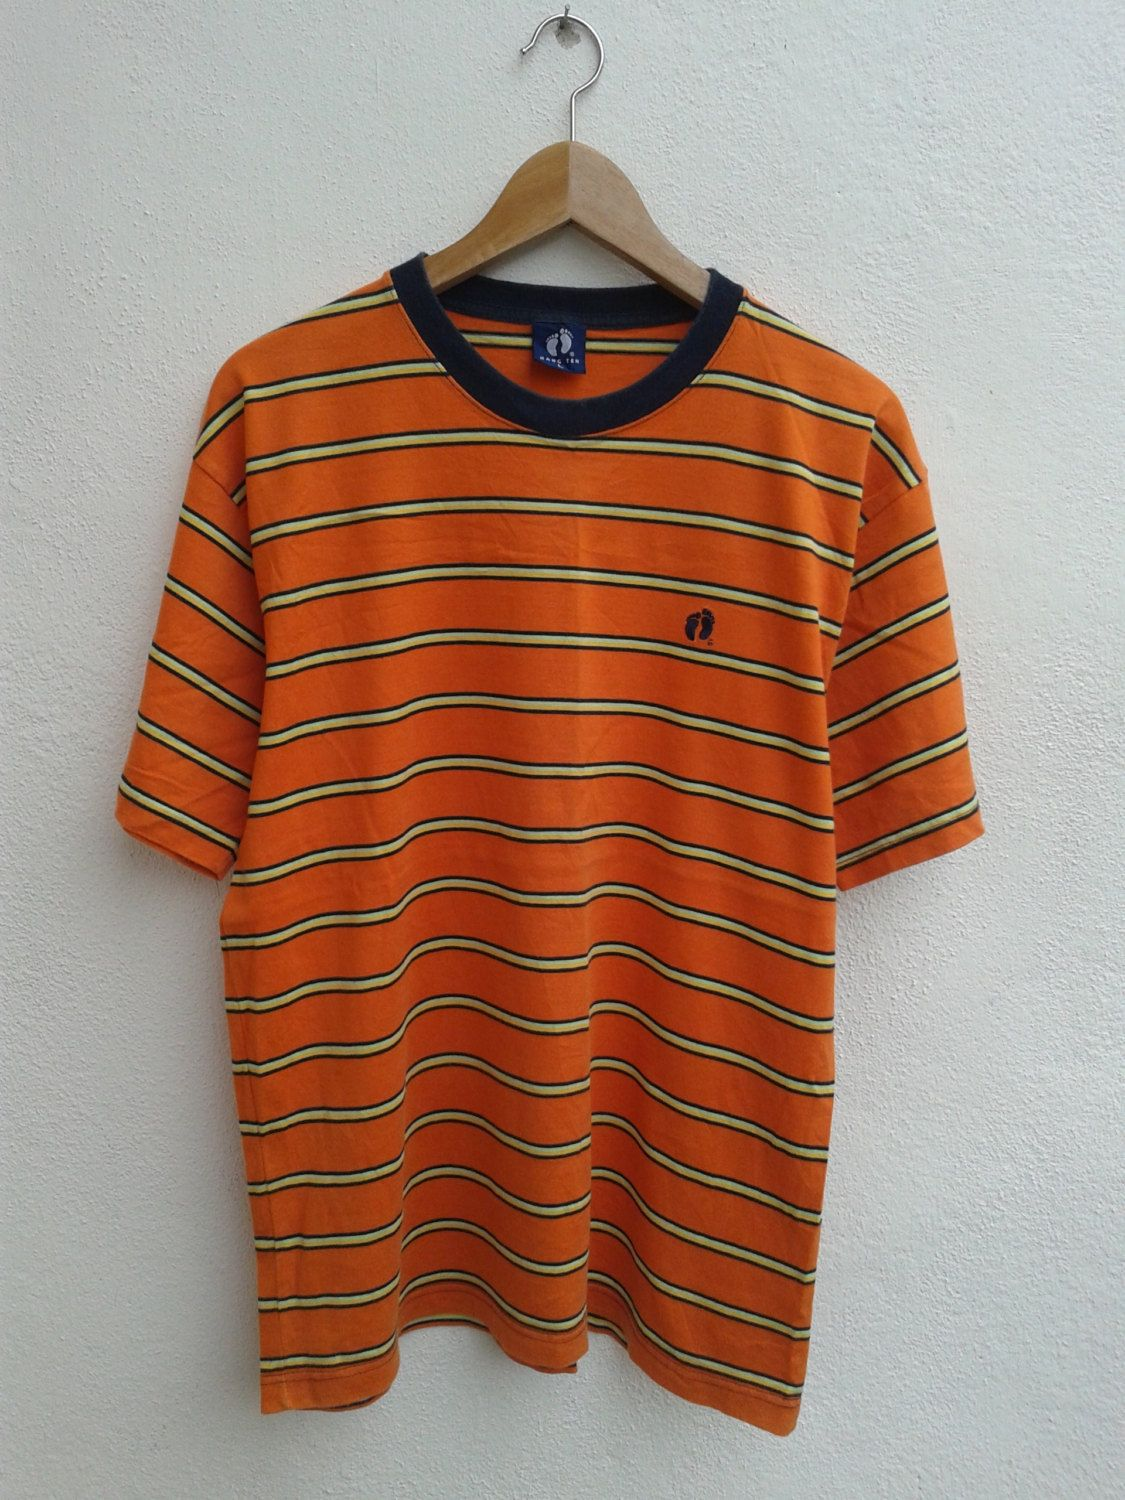 a4d2c2fe 20% YEAR END SALES Vintage 90s hang Ten Surfing Gear Foot Print Embroidered  Orange Stripes T-Shirt - $16.80 USD